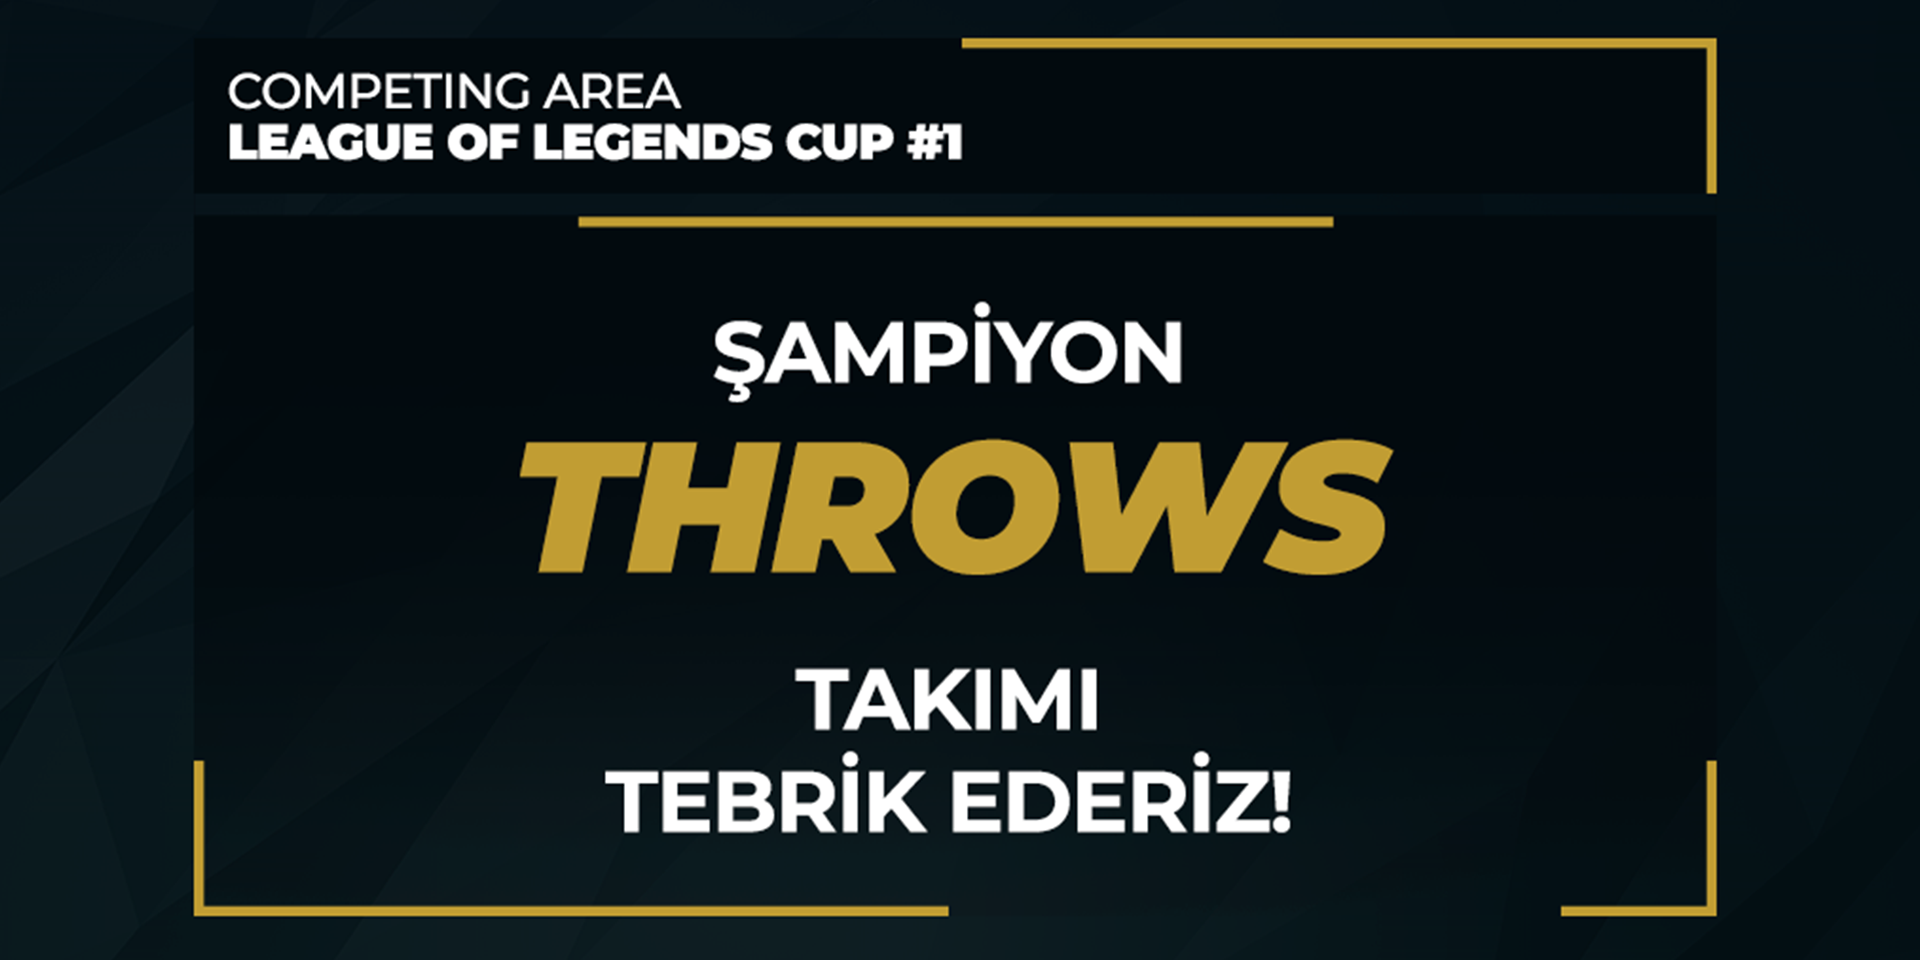 Competing Area League of Legends Cup #1 Şampiyonu THROWS!